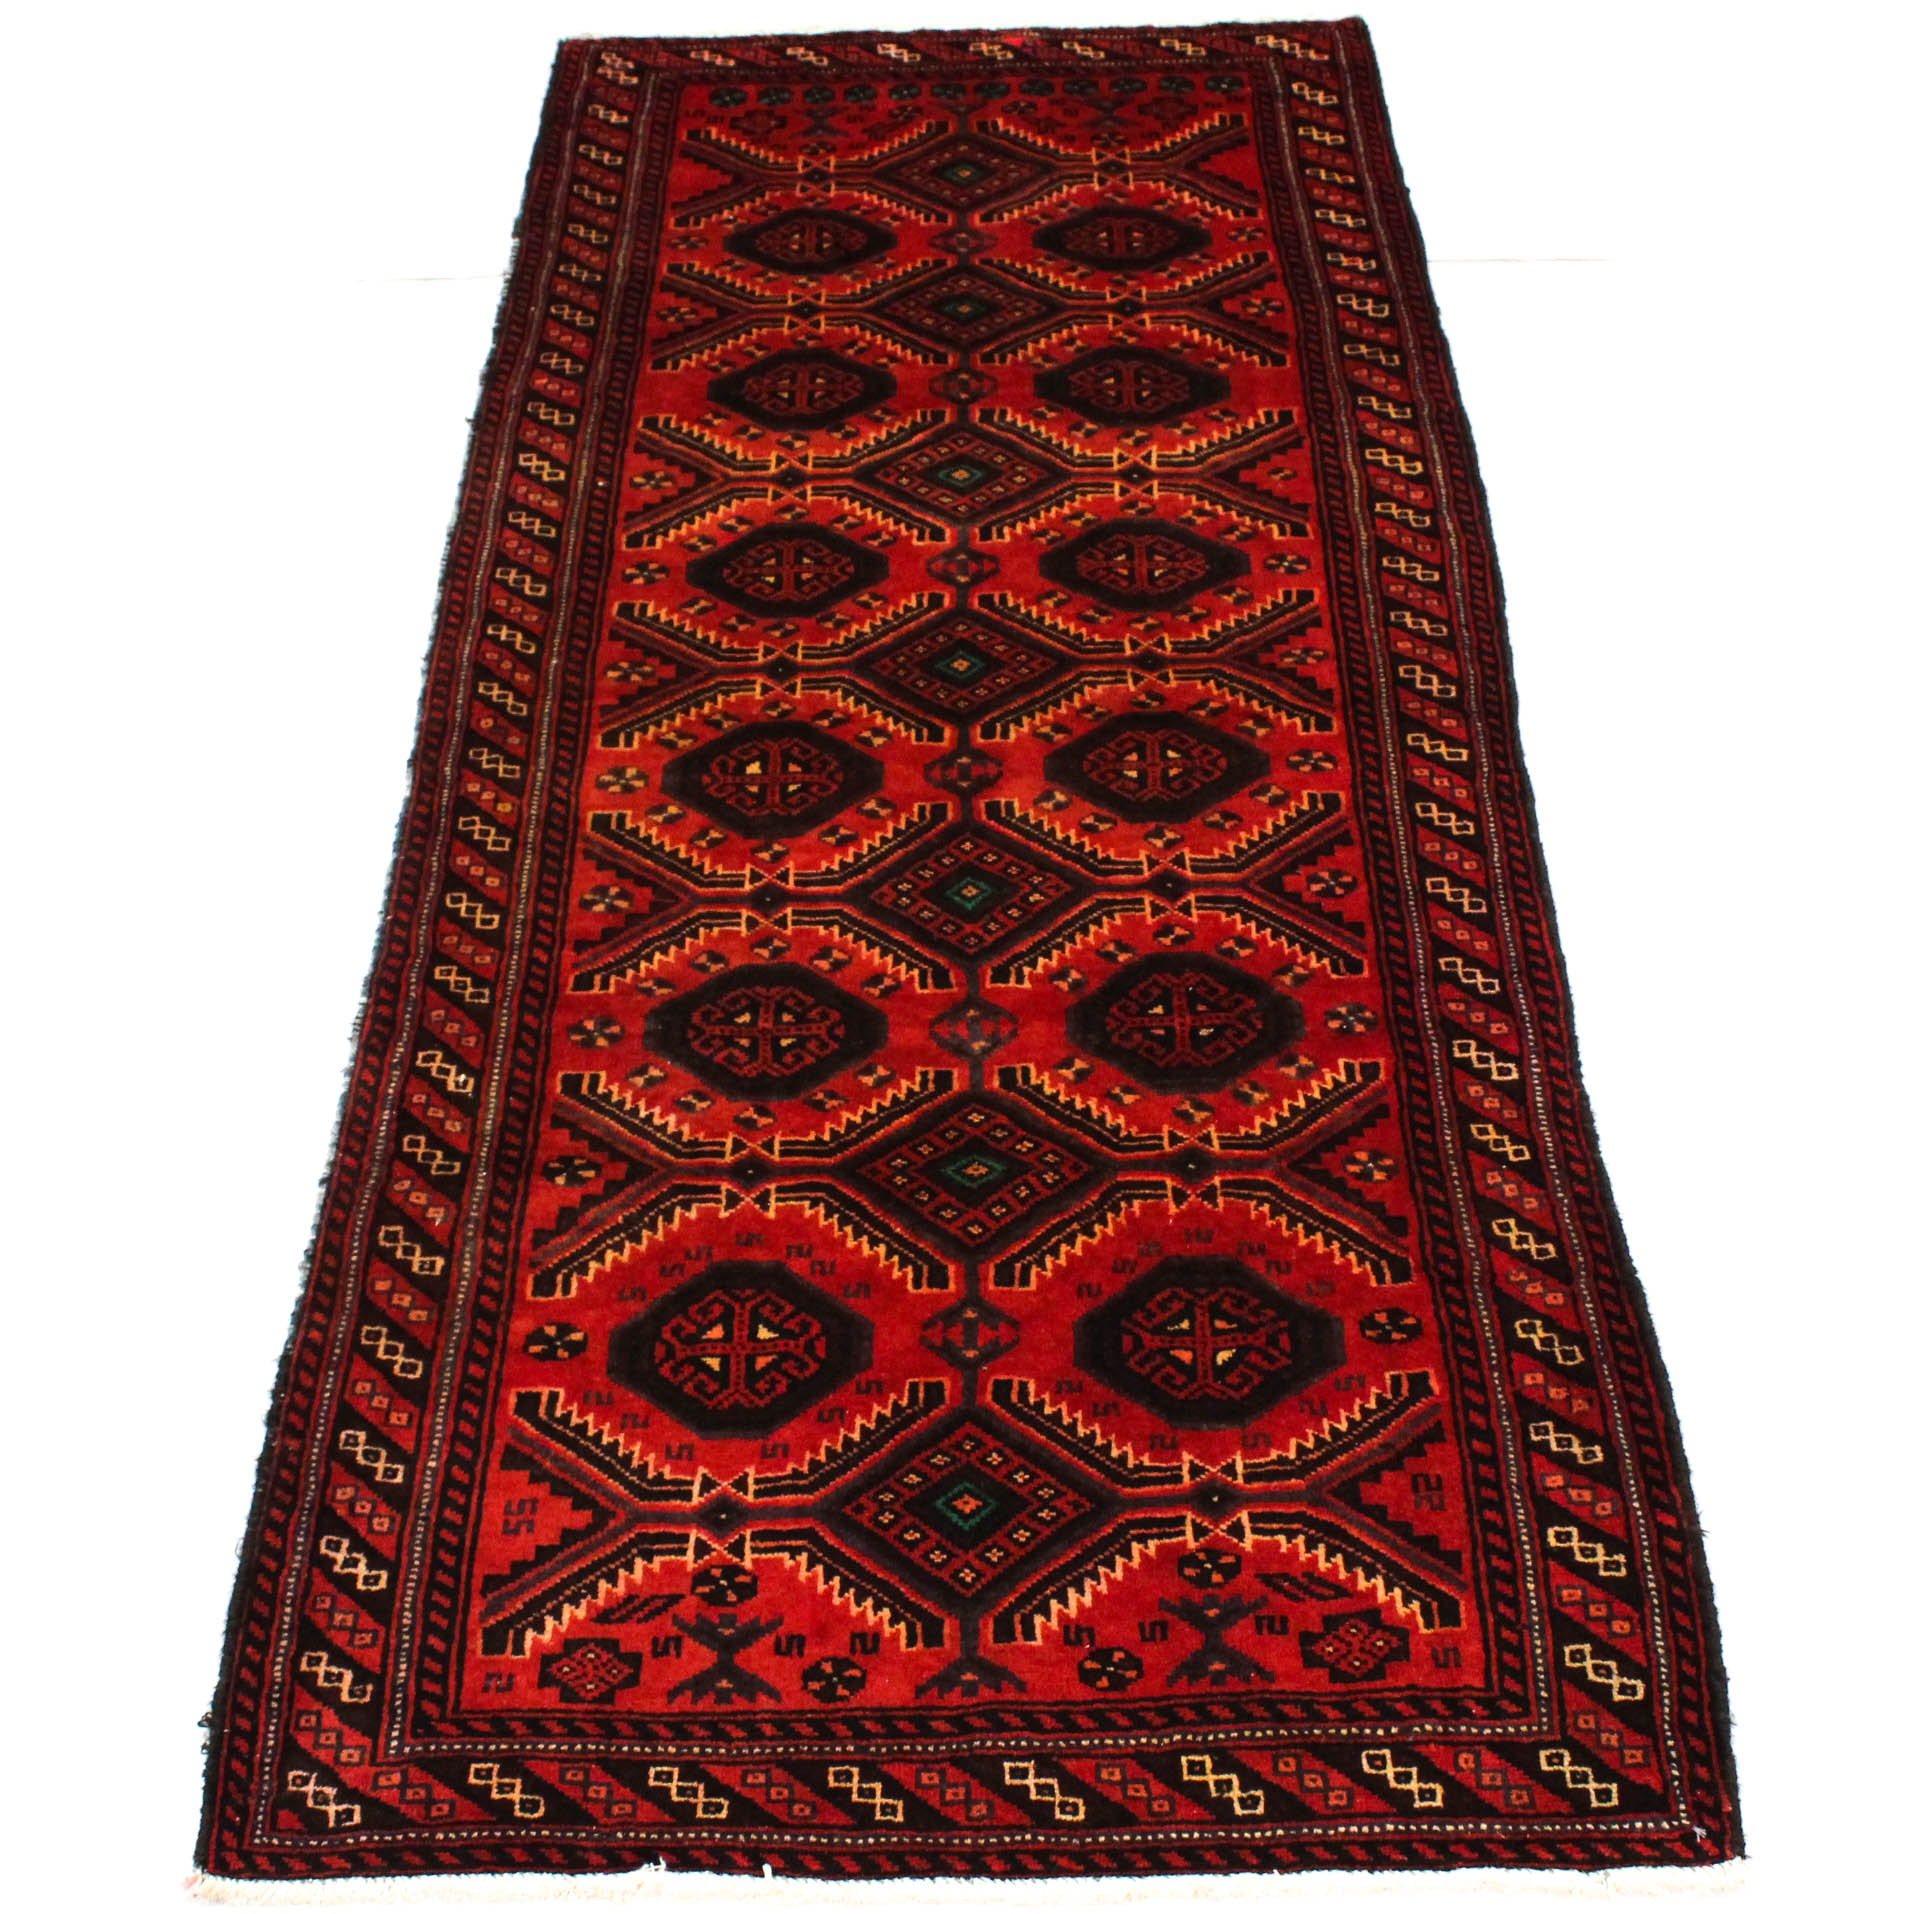 3' x 9' Semi-Antique Hand-Knotted Persian Northwest Carpet Runner